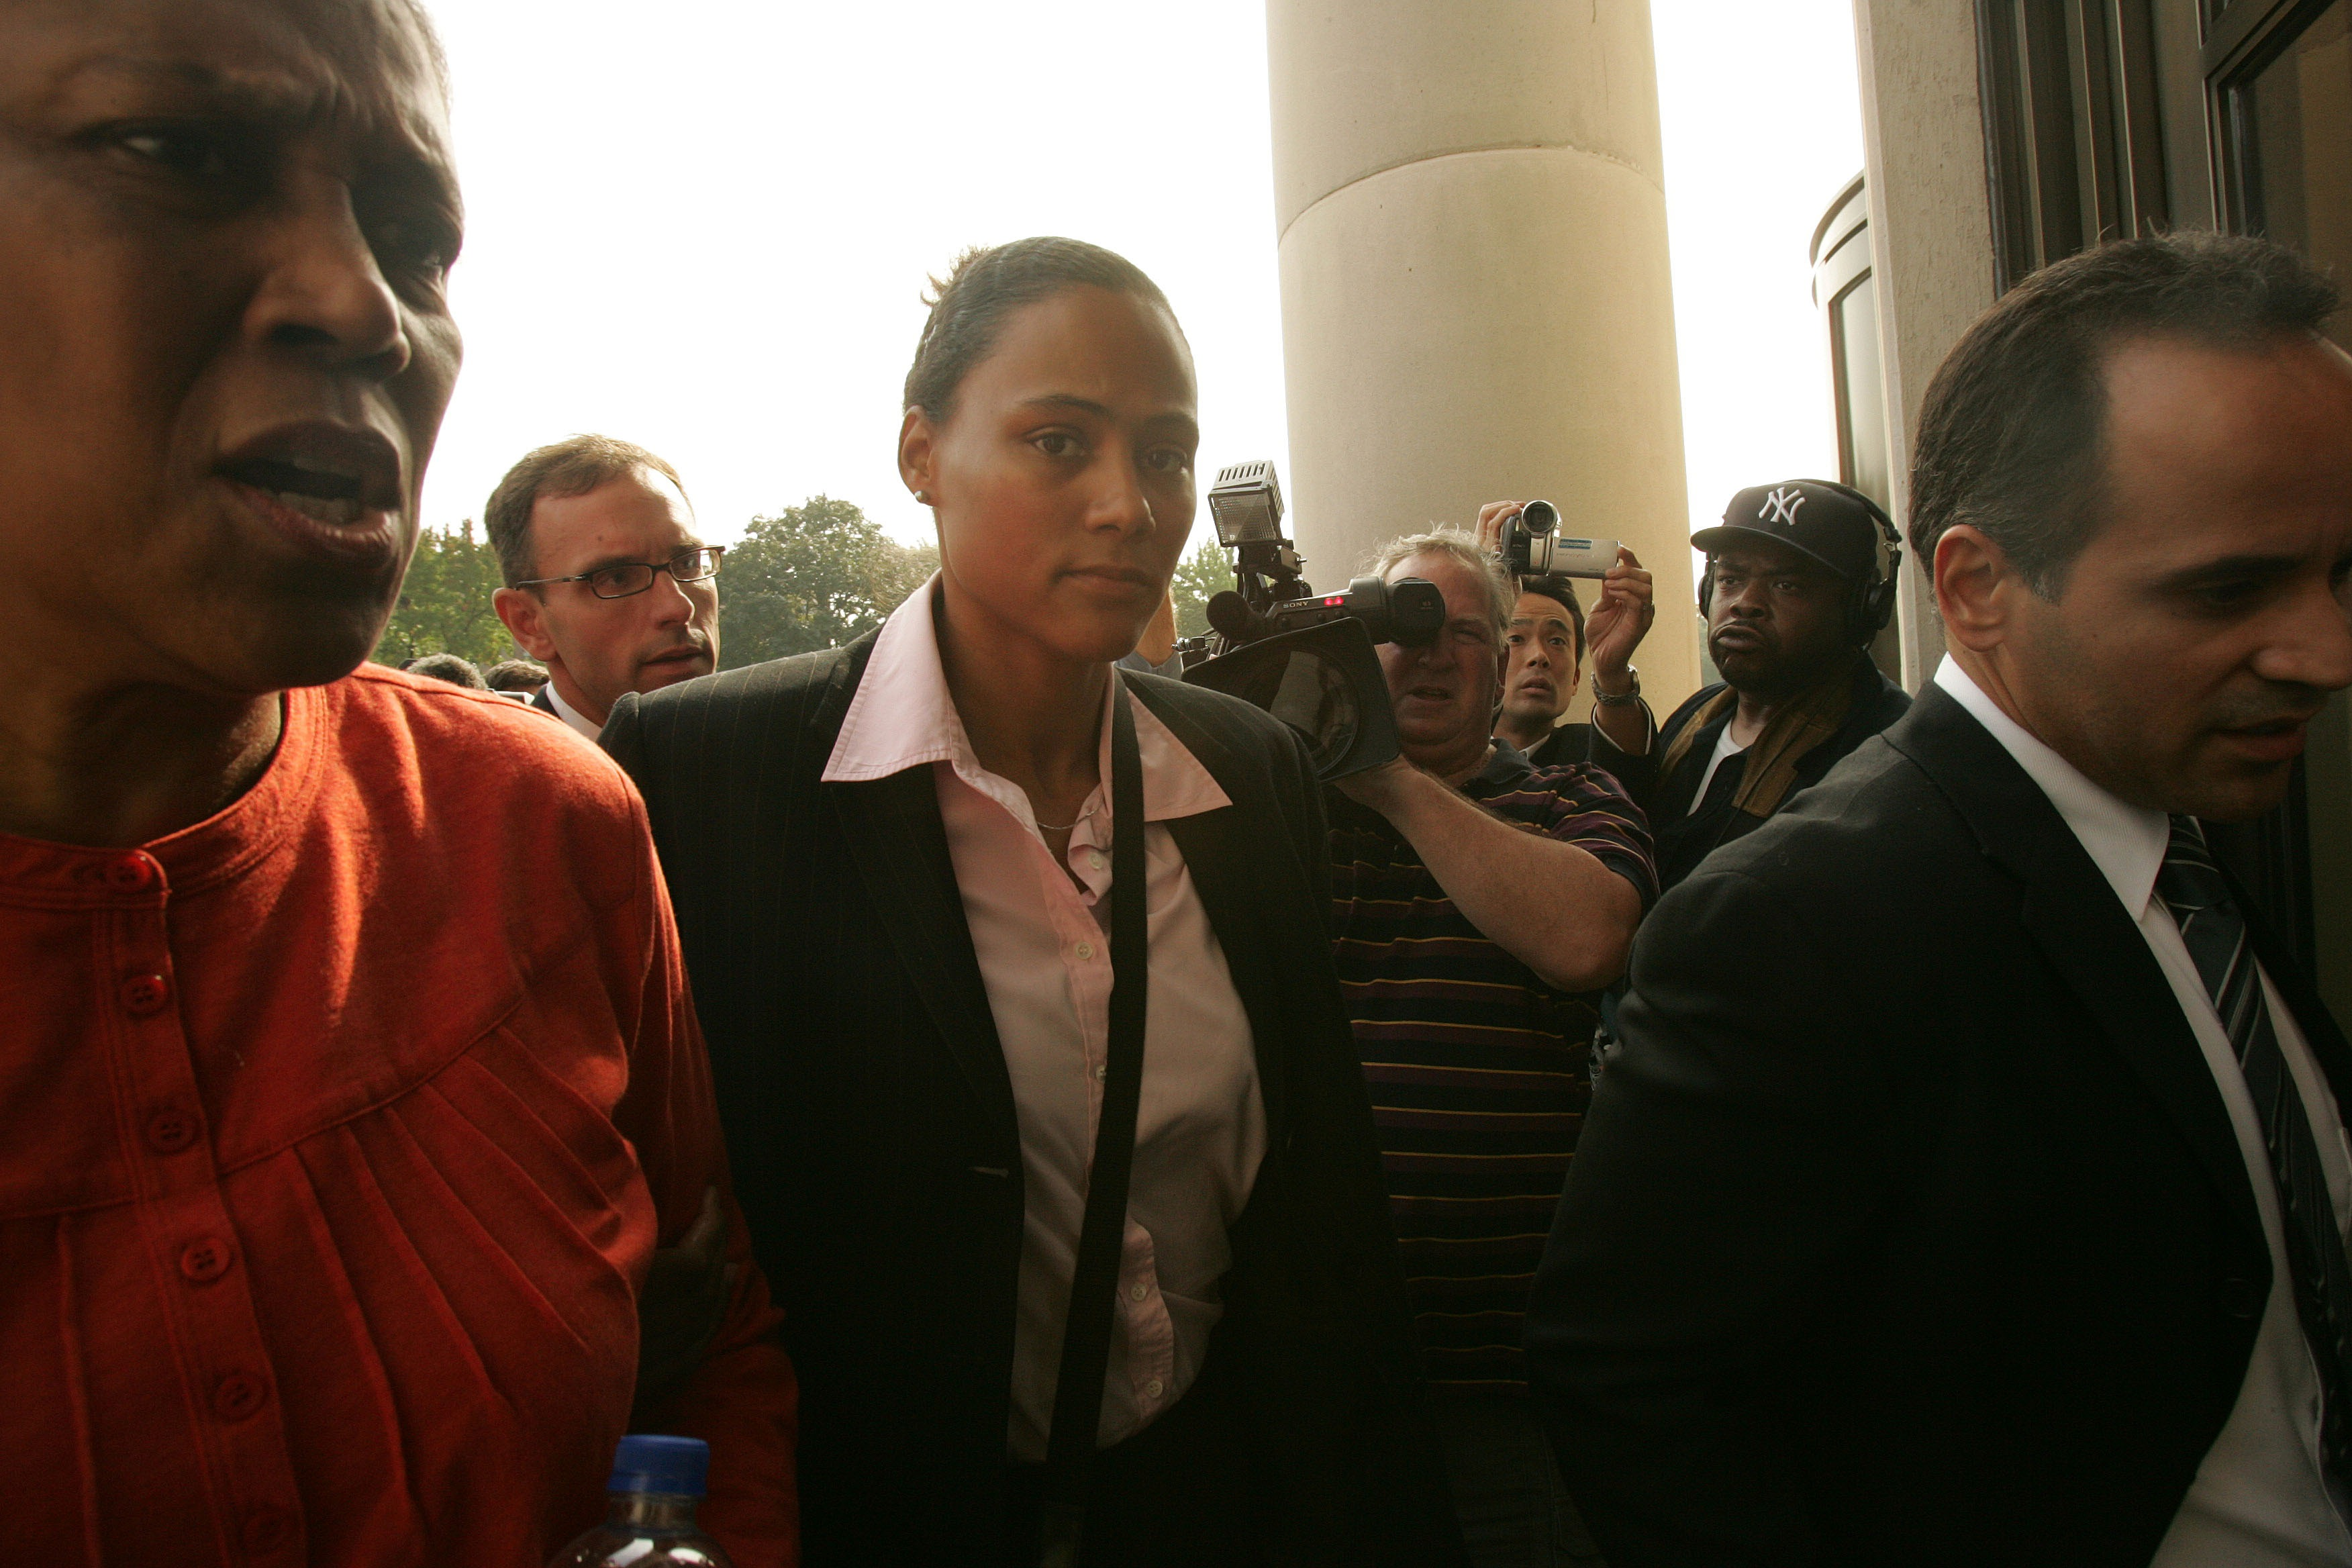 WHITE PLAINS, NY - OCTOBER 5:  Three-time Olympic gold medalist Marion Jones (C) enters a United States federal courthouse October 5, 2007 in White Plains, New York. Jones is expected to plead guilty to charges in connection with steroid use.  (Photo by H